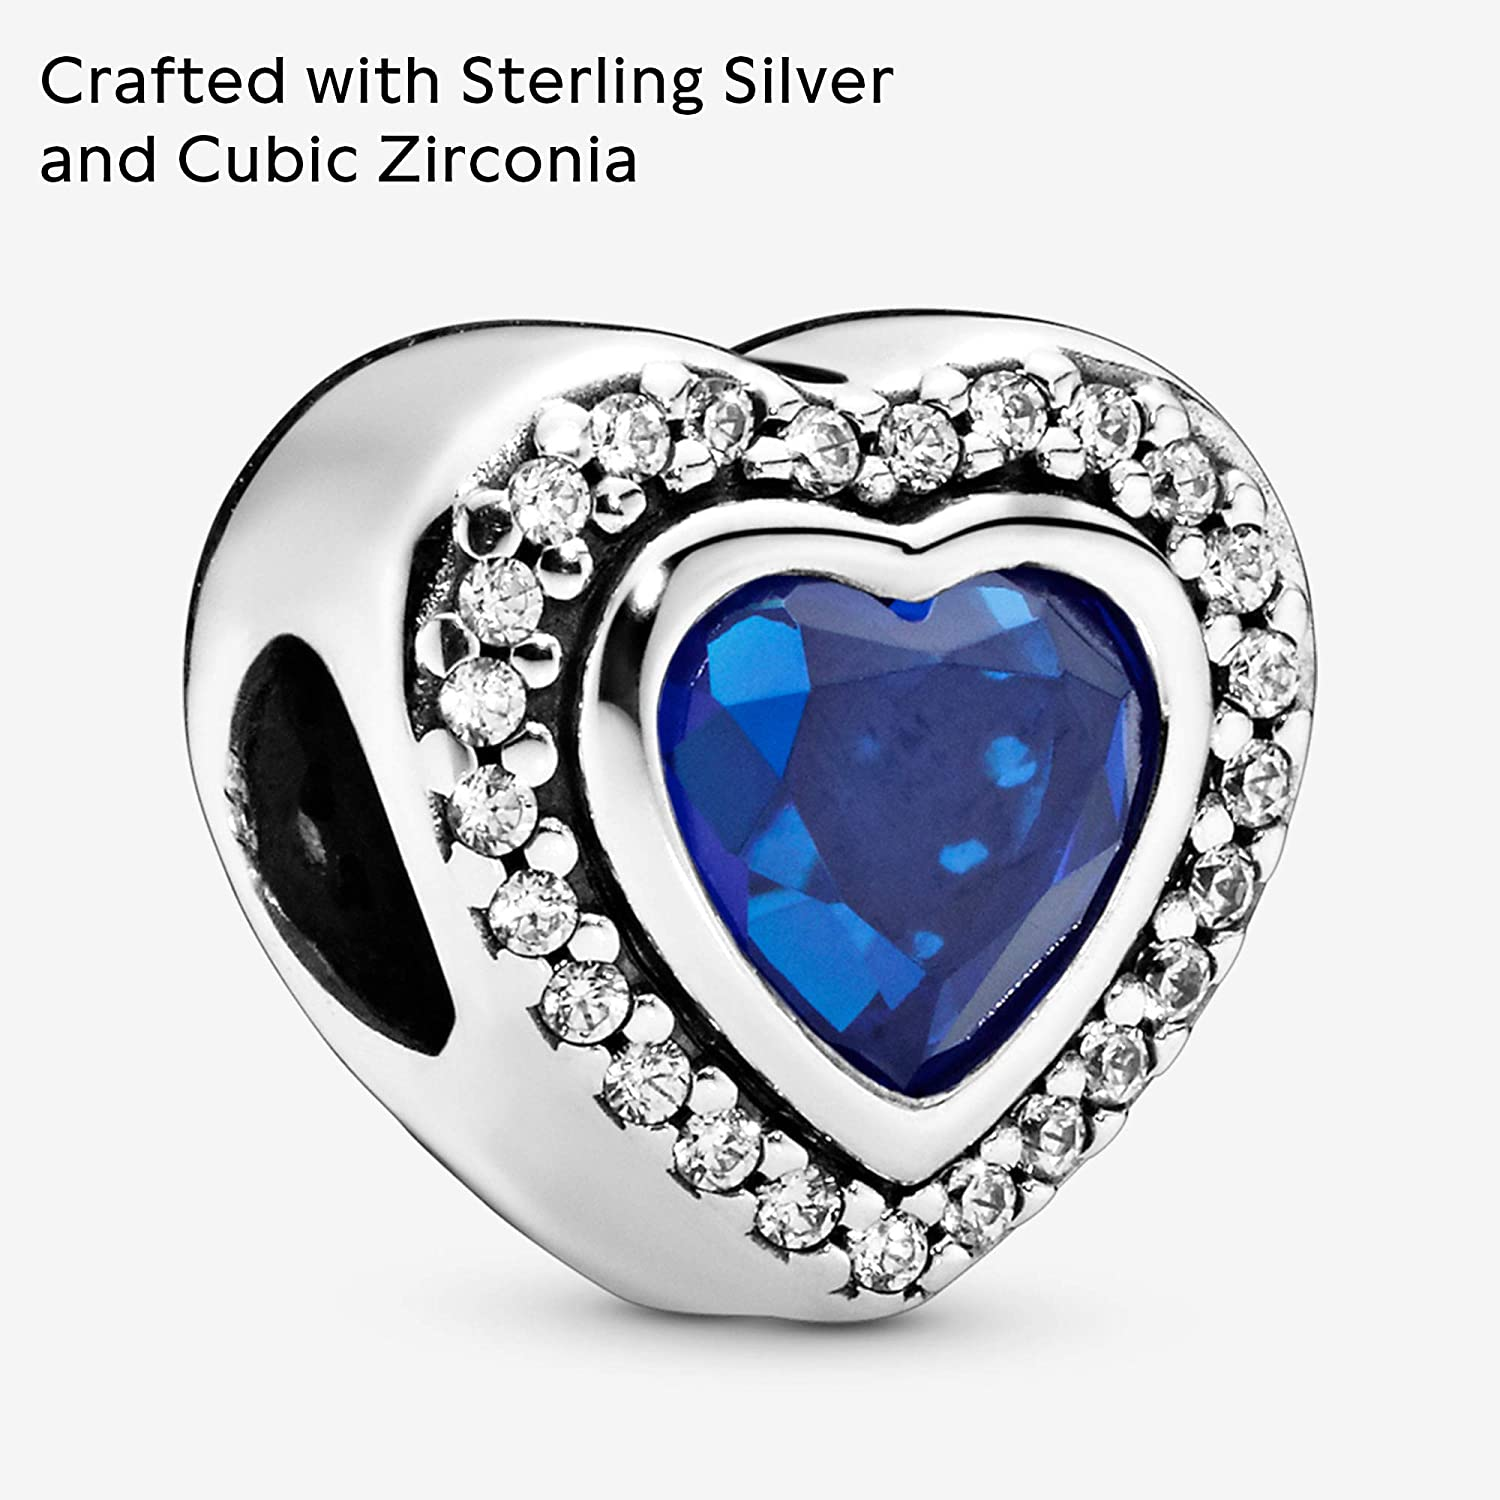 Pandora Jewelry Sparkling Blue Heart Crystal and Cubic Zirconia Charm in  Sterling Silver